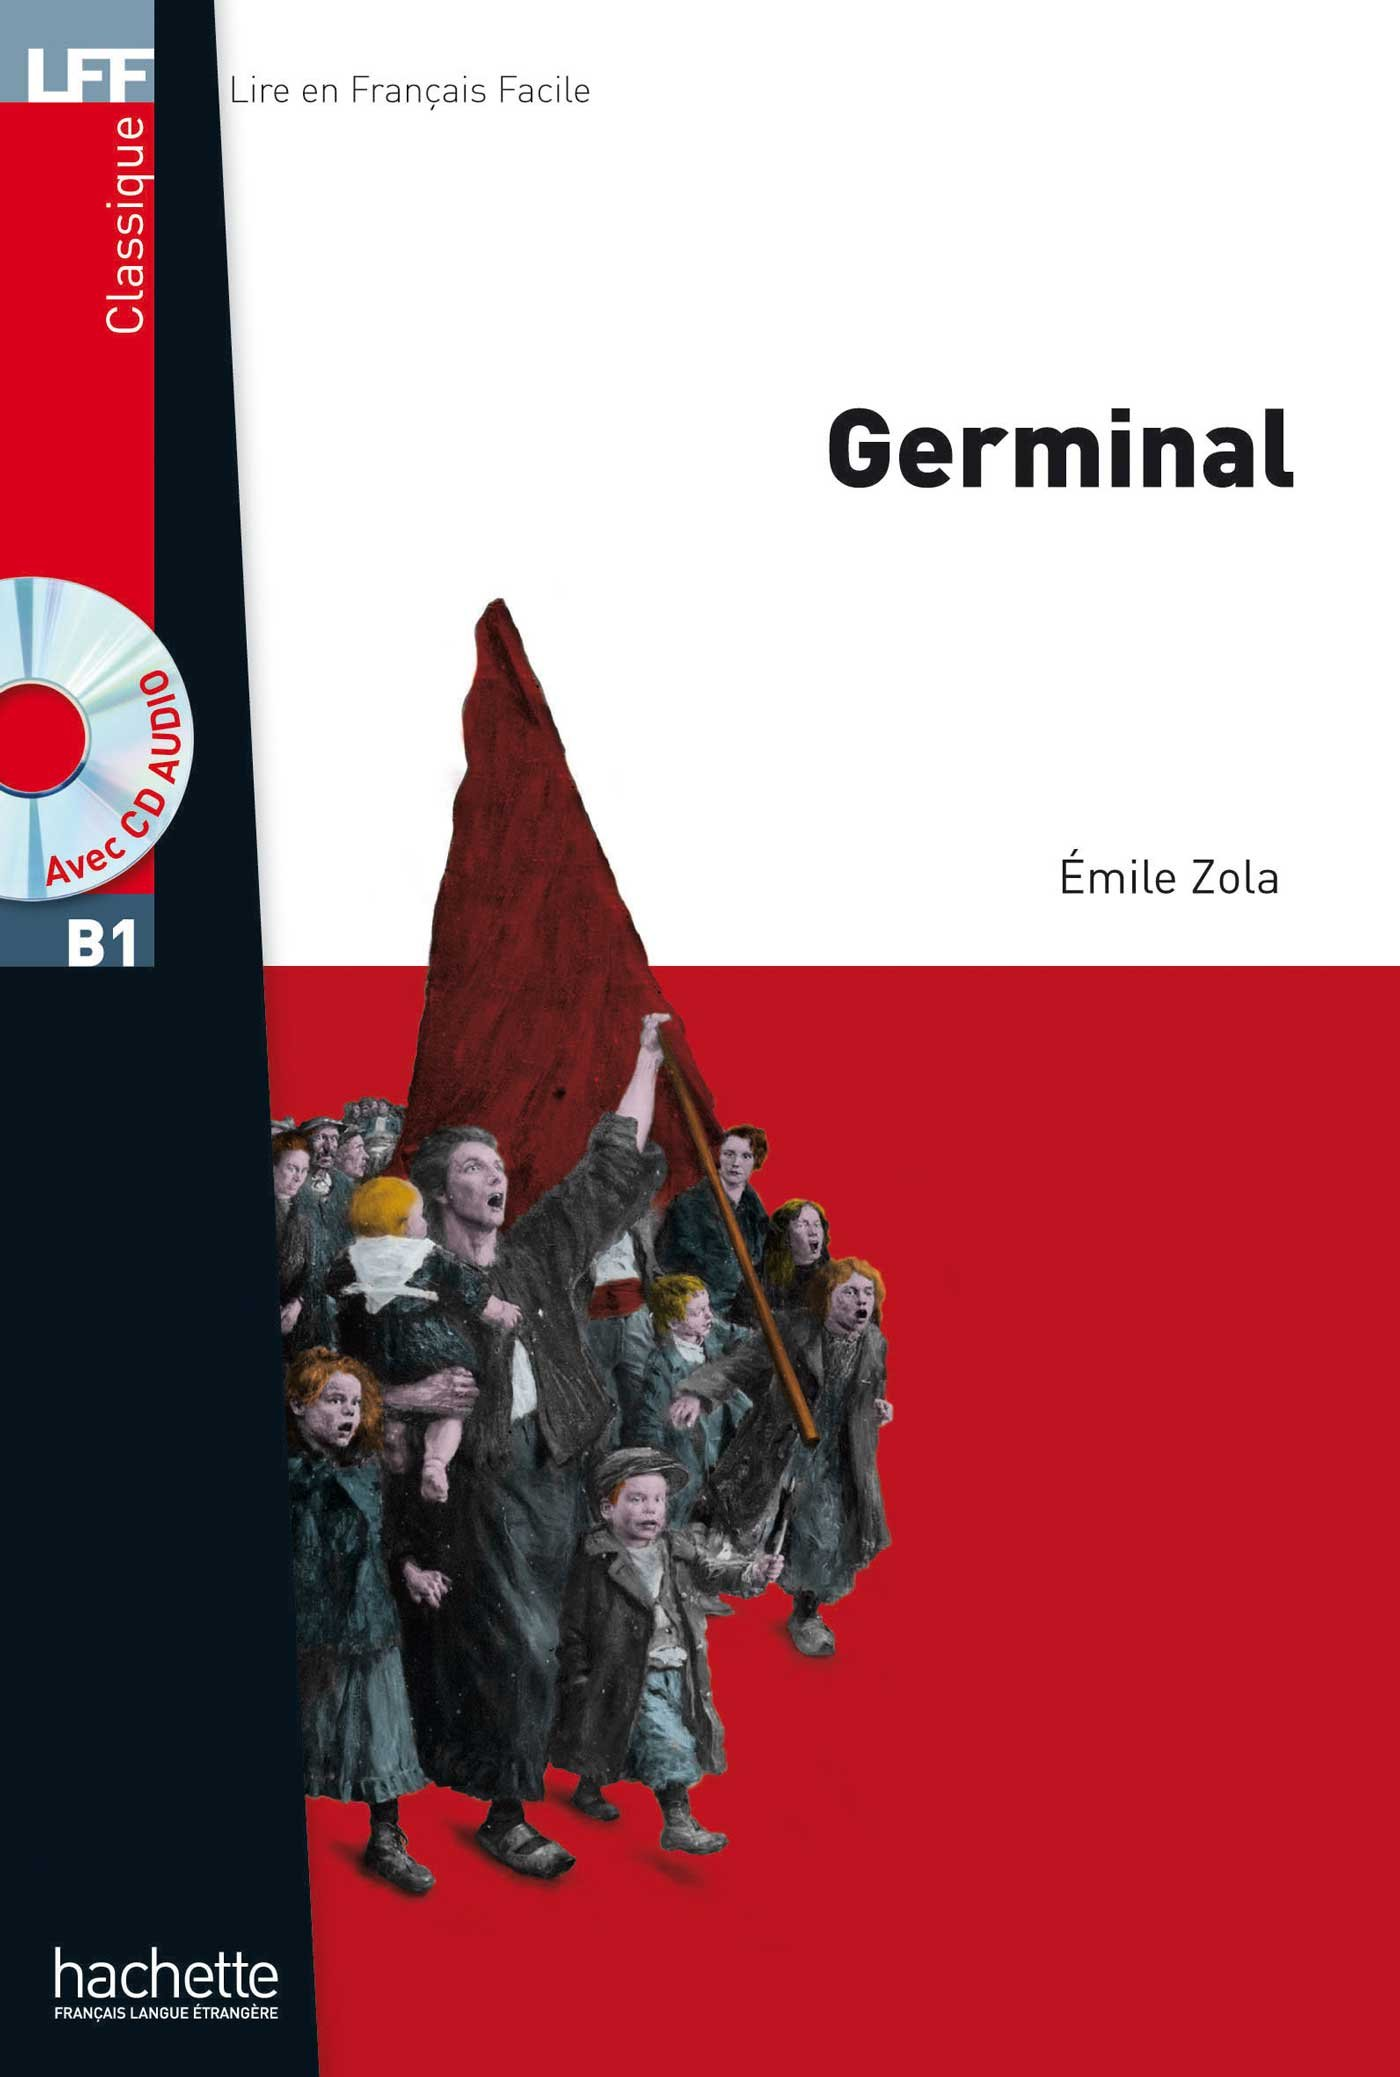 Germinal Cd Audio Mp3 B1 Lff Lire En Francais Facile